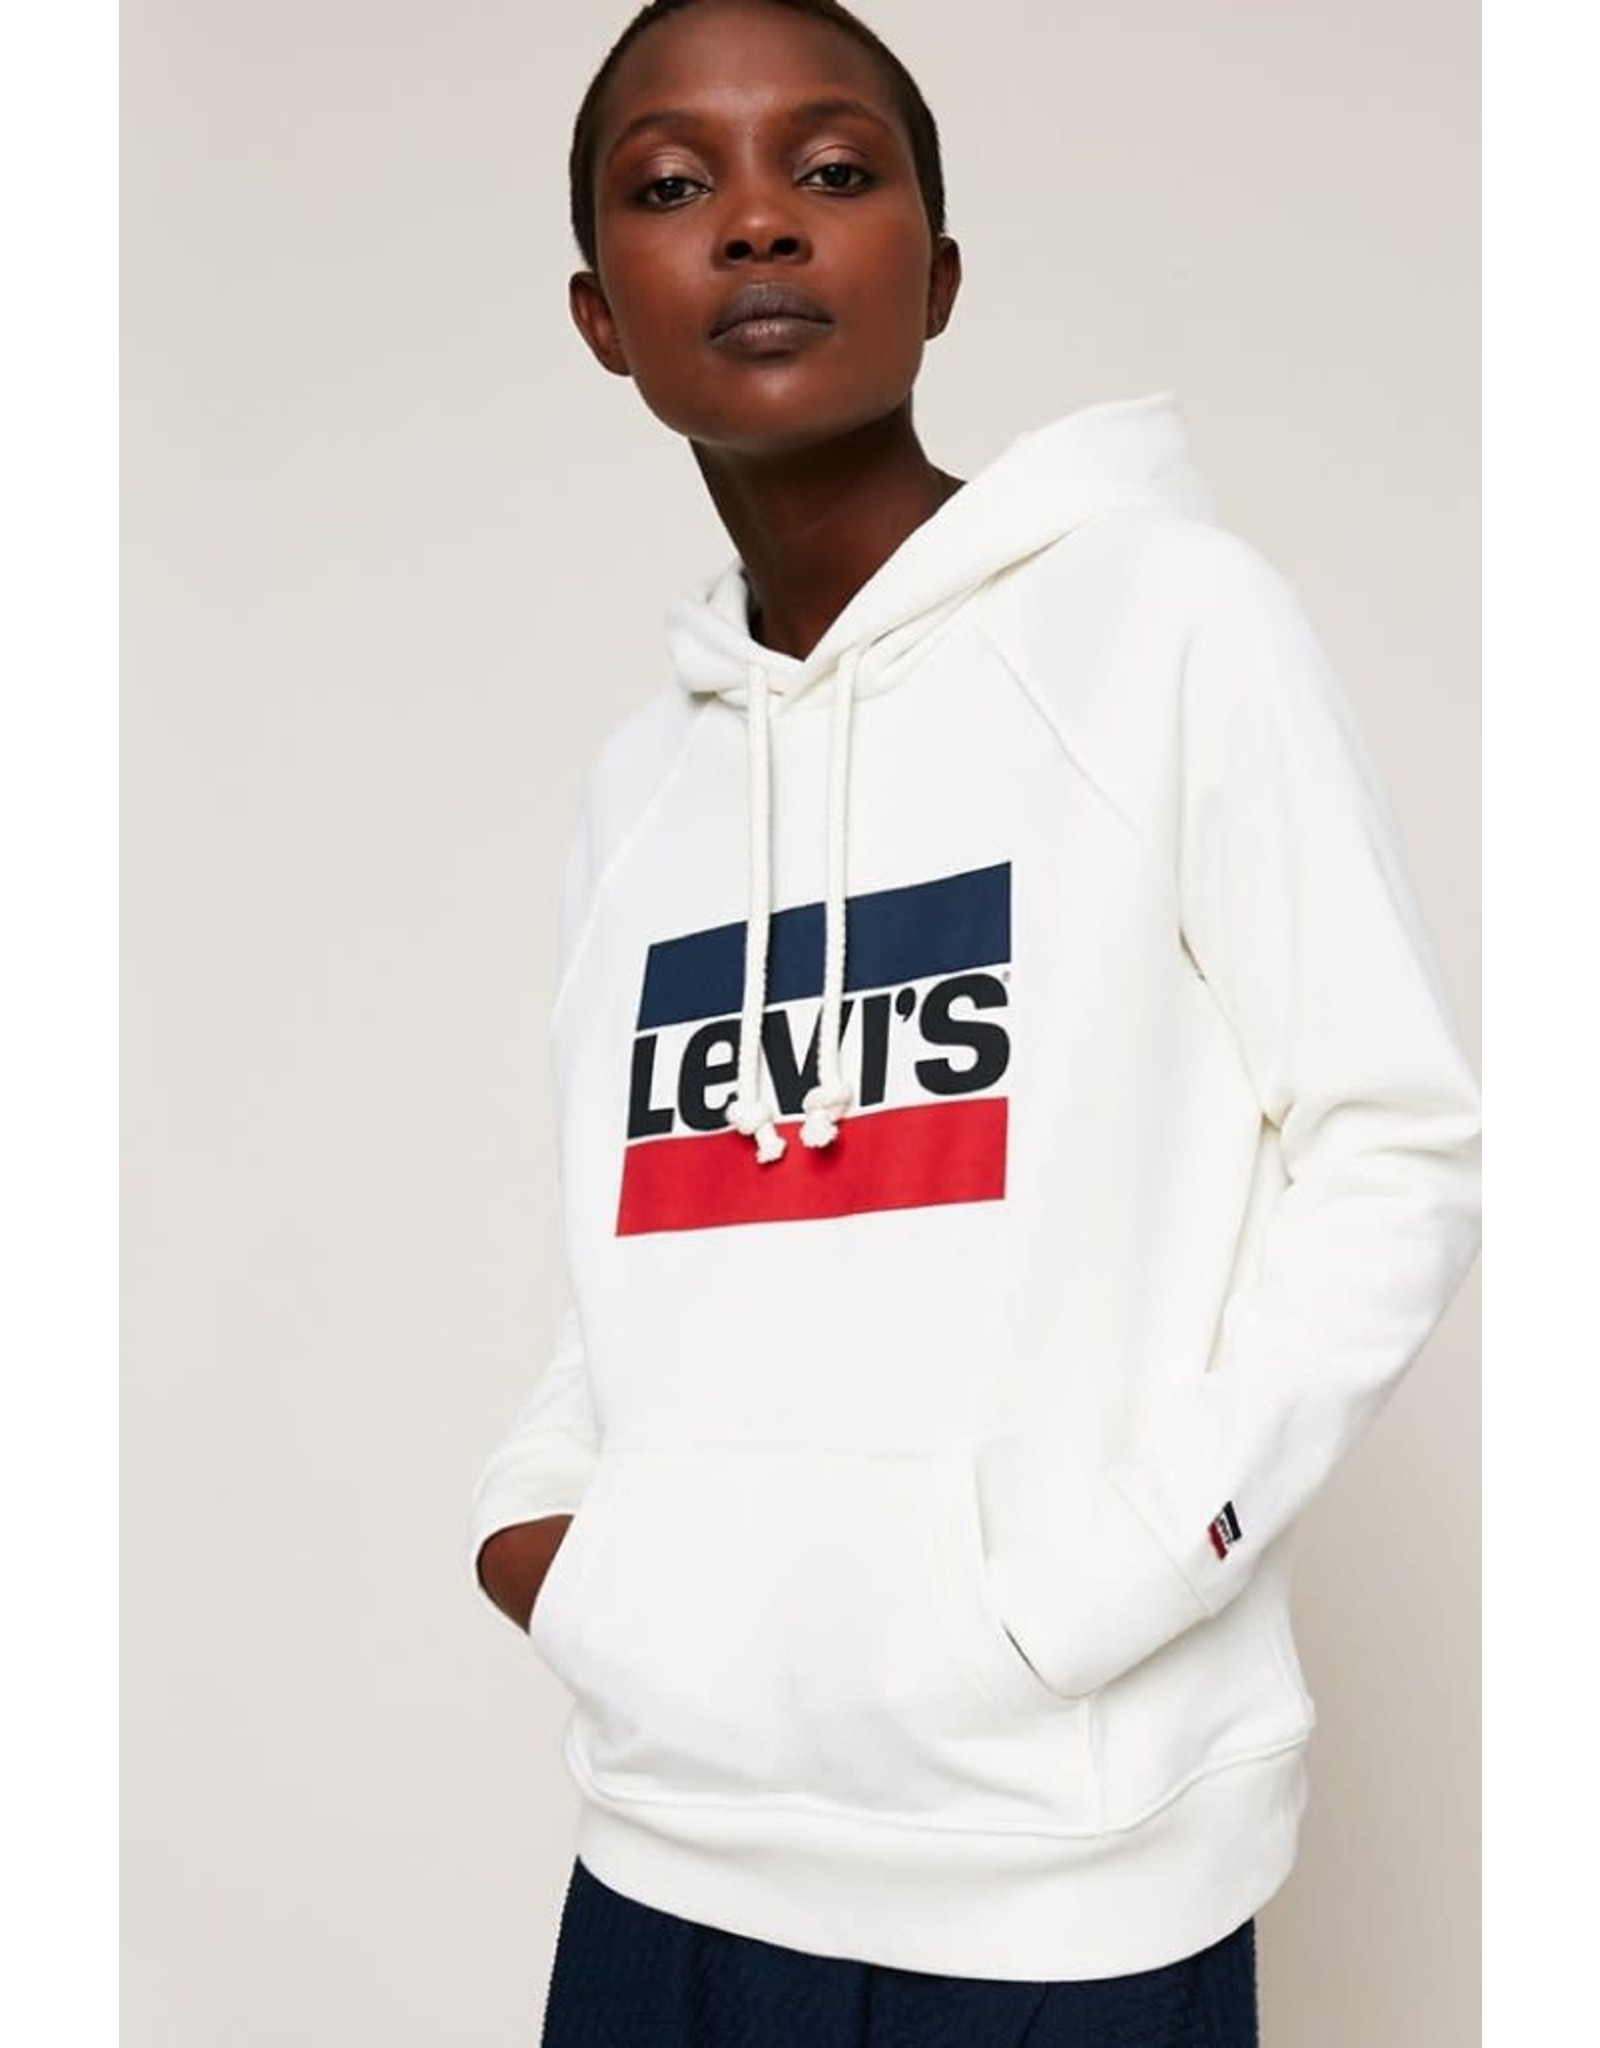 Levi's Hoodie Sport White Large